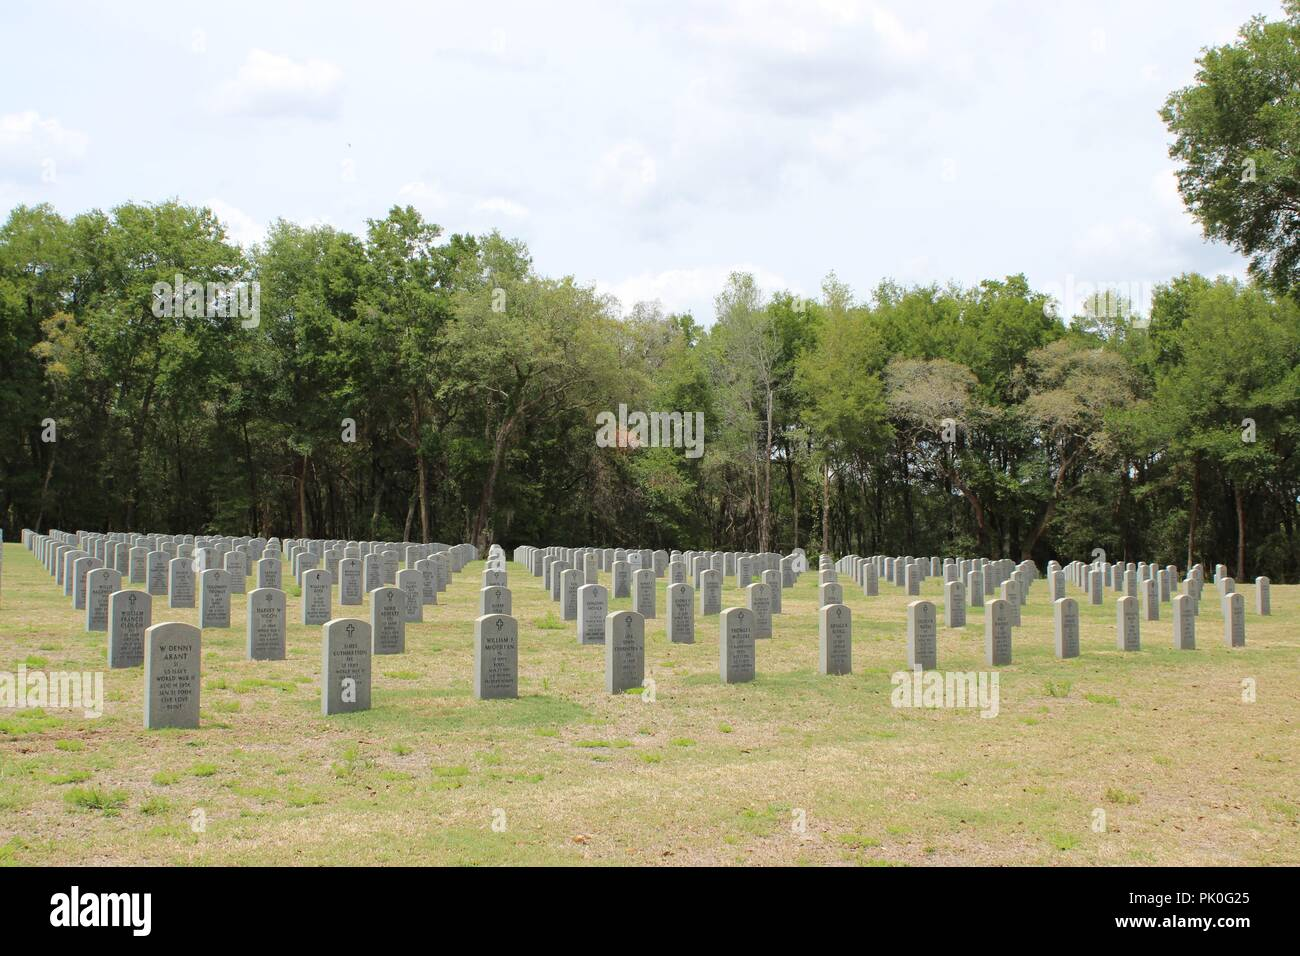 Florida National Cemetery located near the city of Bushnell in Sumter County, Florida, USA - Stock Image